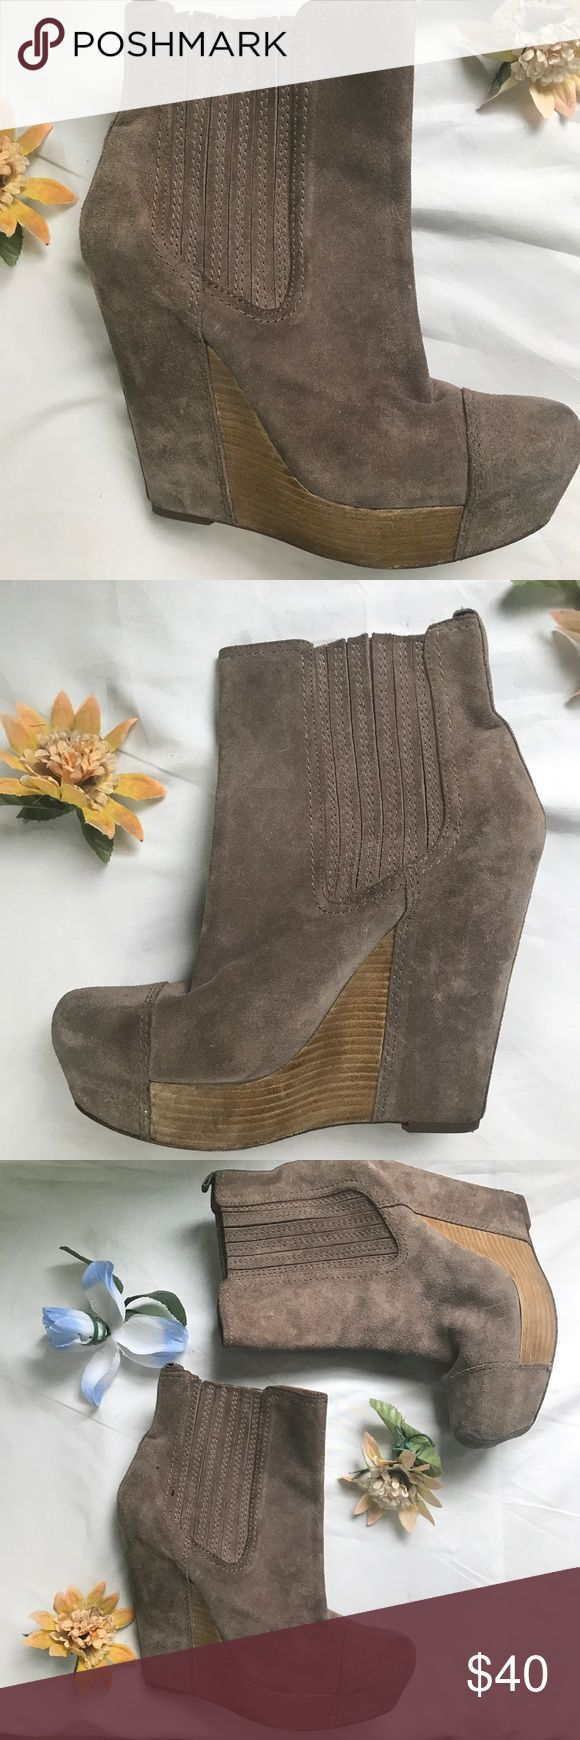 JOAN & DAVID Dayvonna Wedge Boots JOAN & DAVID Dayvonna Upper. Size 8.5.  Suede. Tan color. Wedge. Gently worn. See photos for details. Joan & David Shoes Ankle Boots & Booties